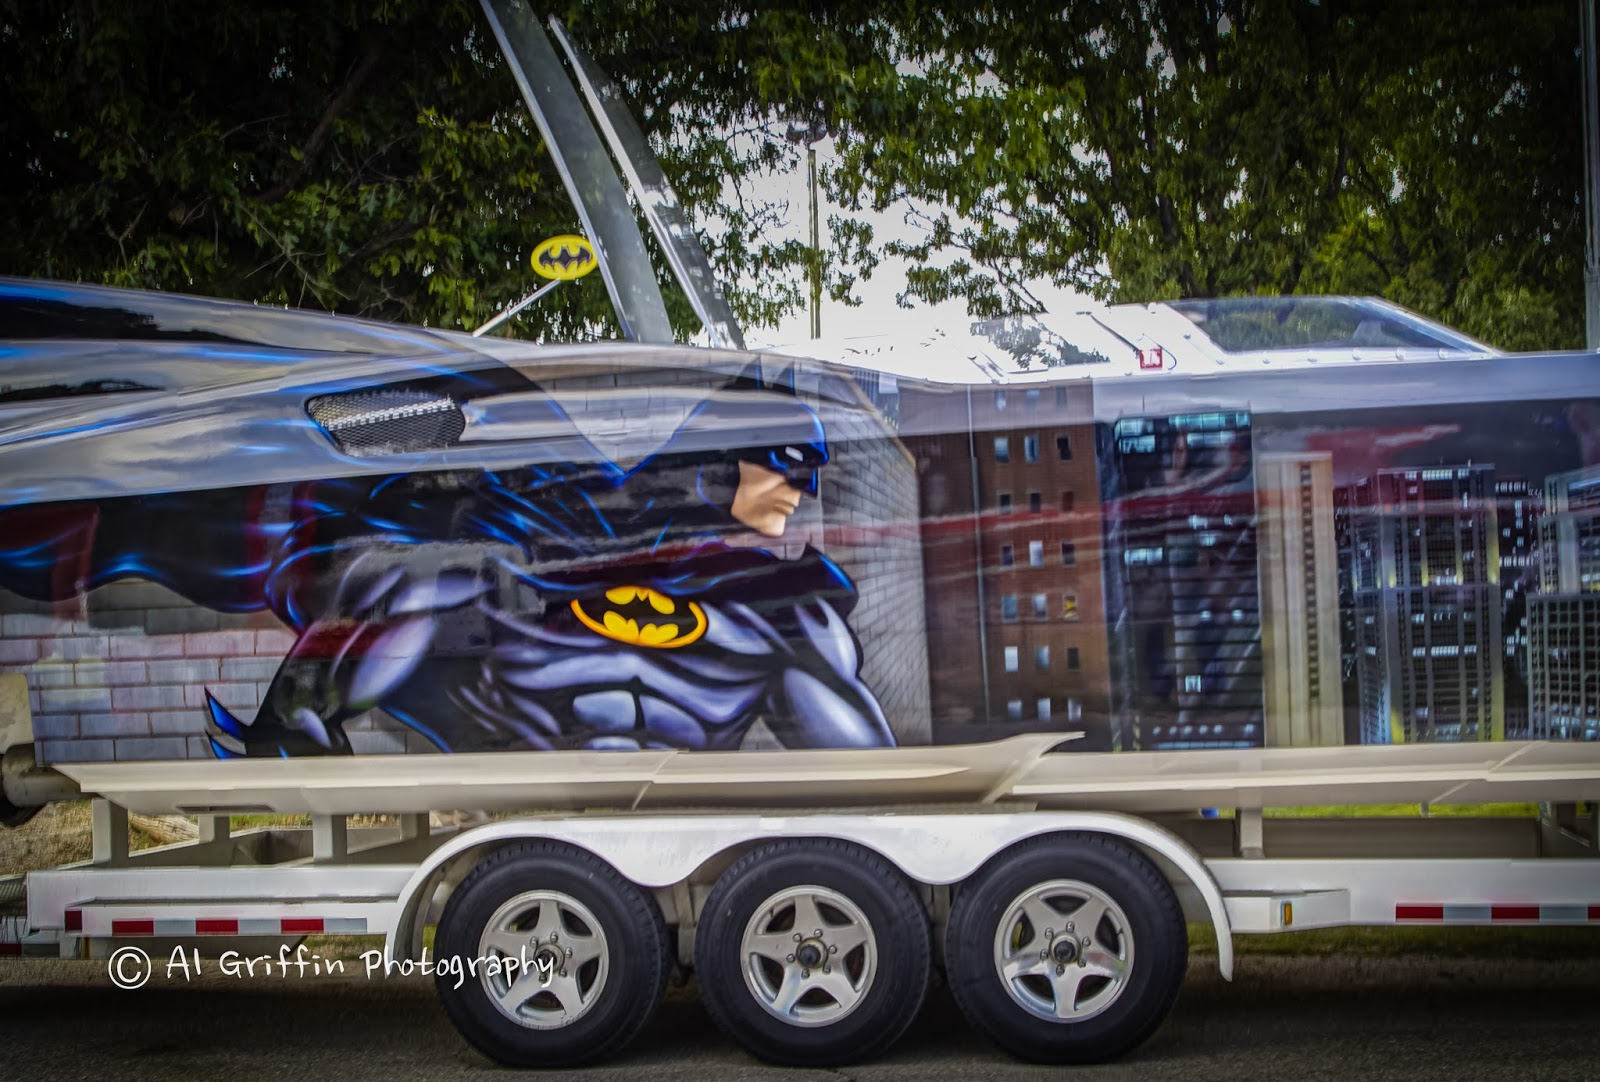 Shown below is the Batboat, owned and driven by Eliot and Chris Gray